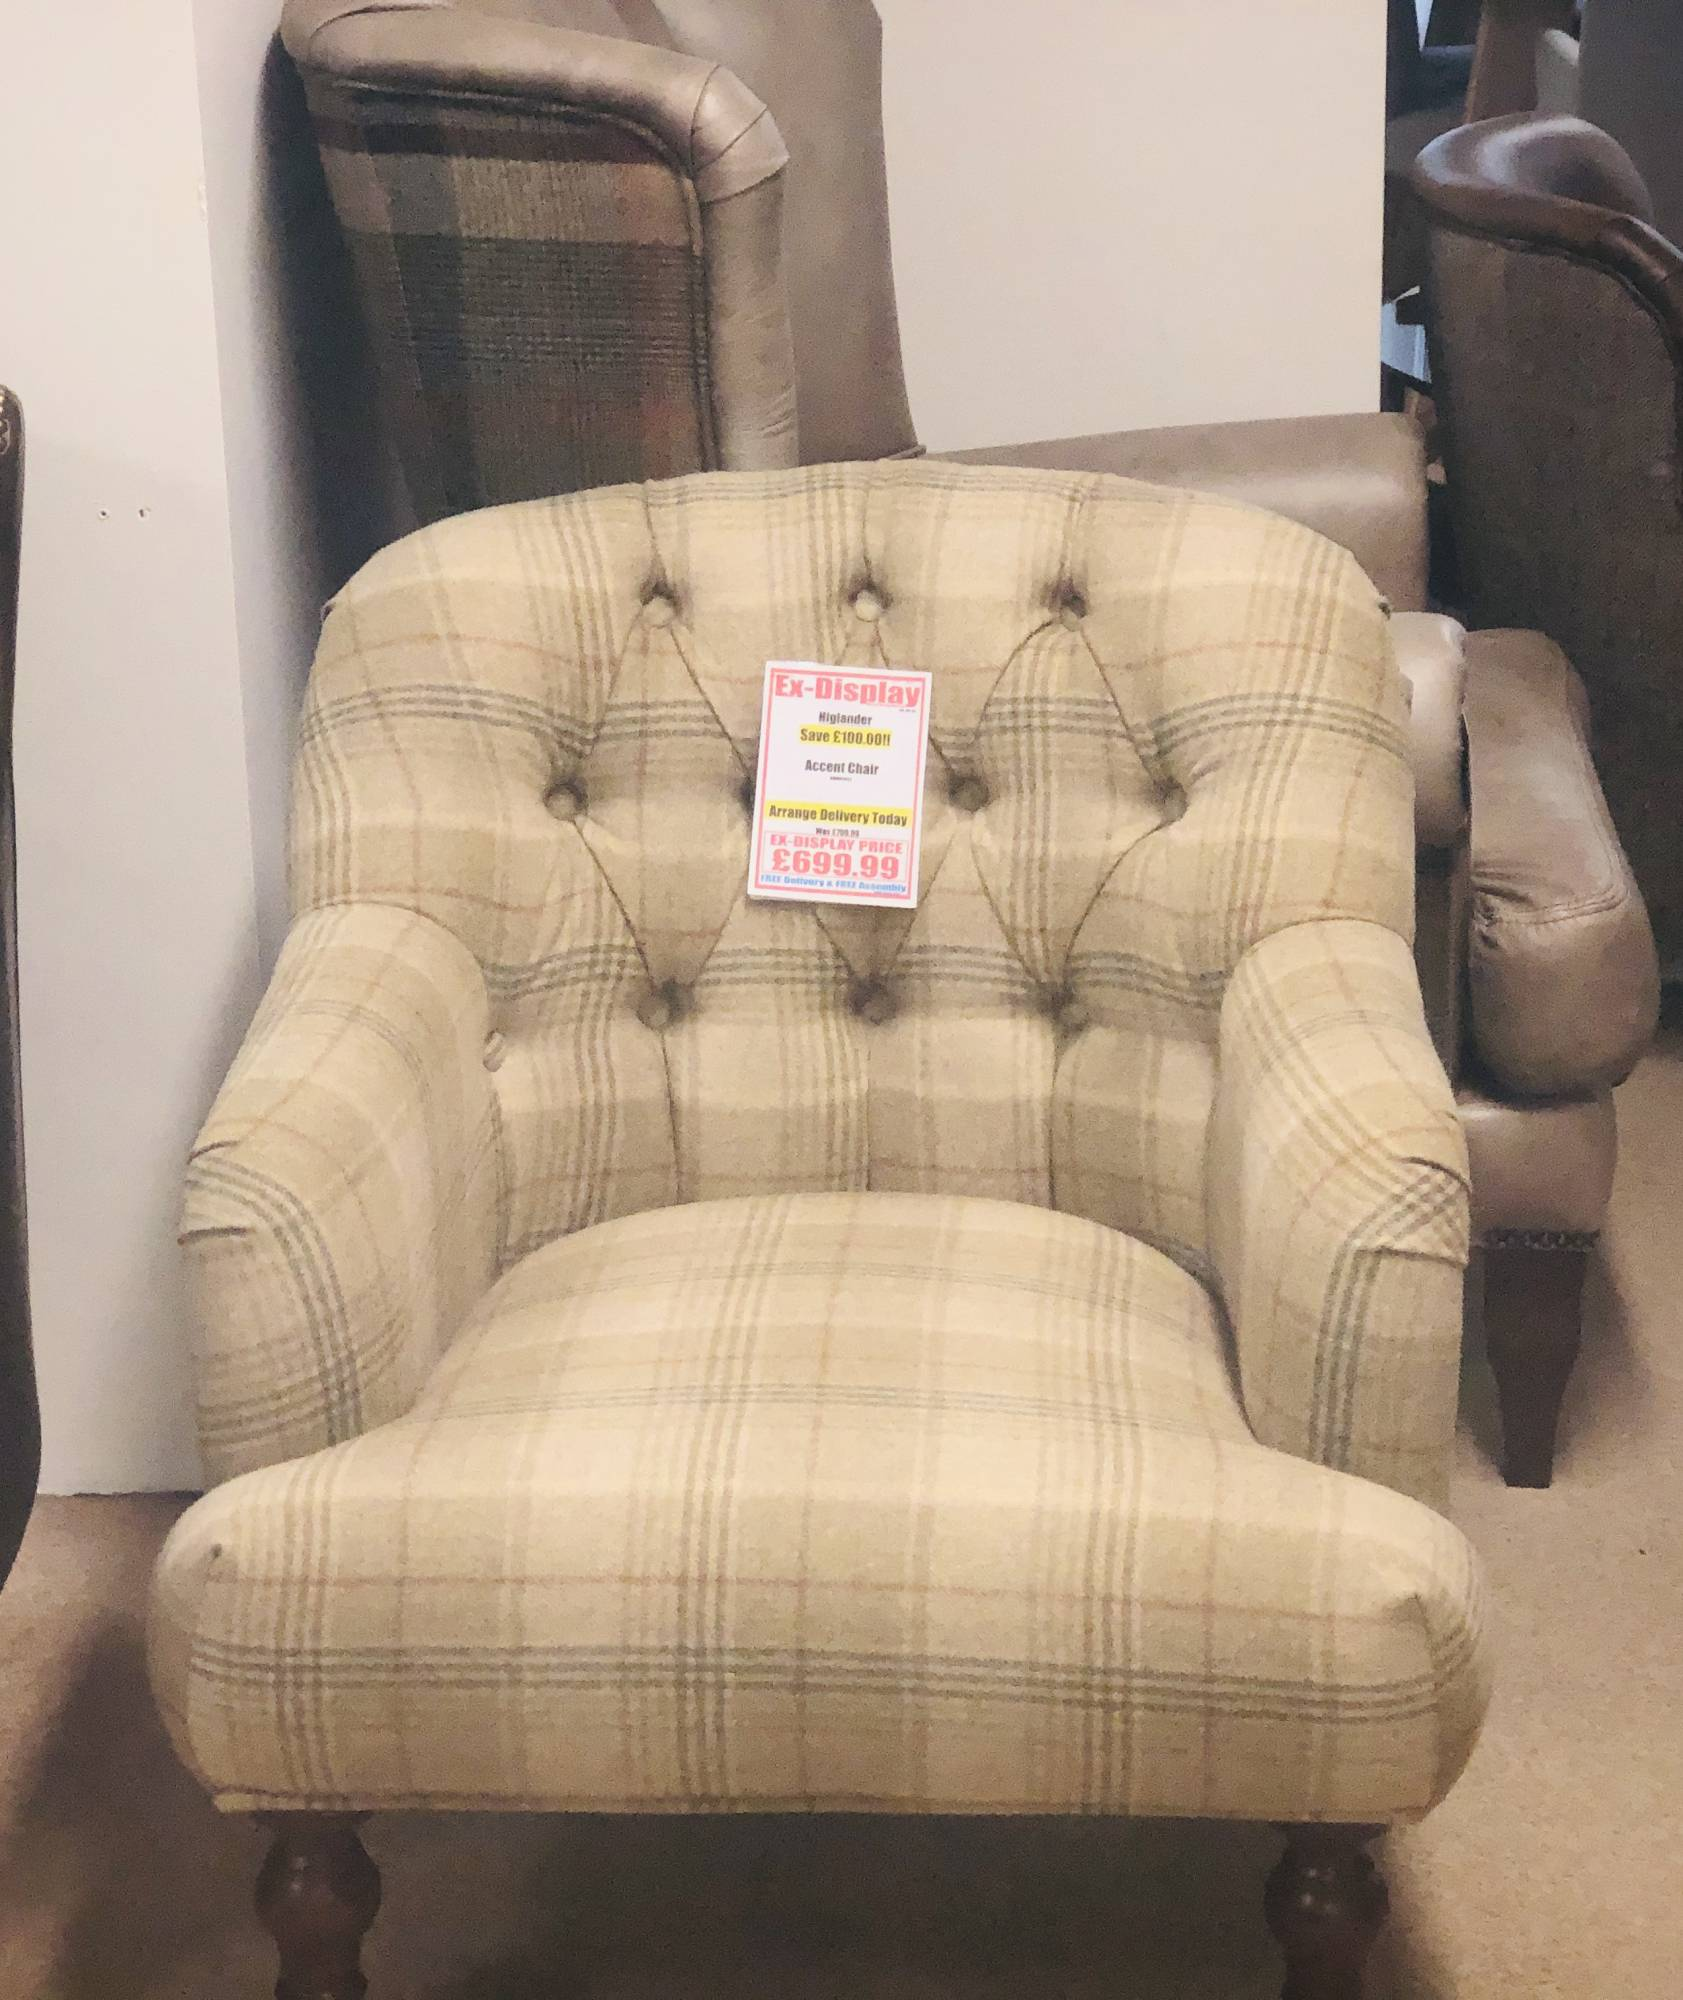 Highlander Accent Chair - Clearance